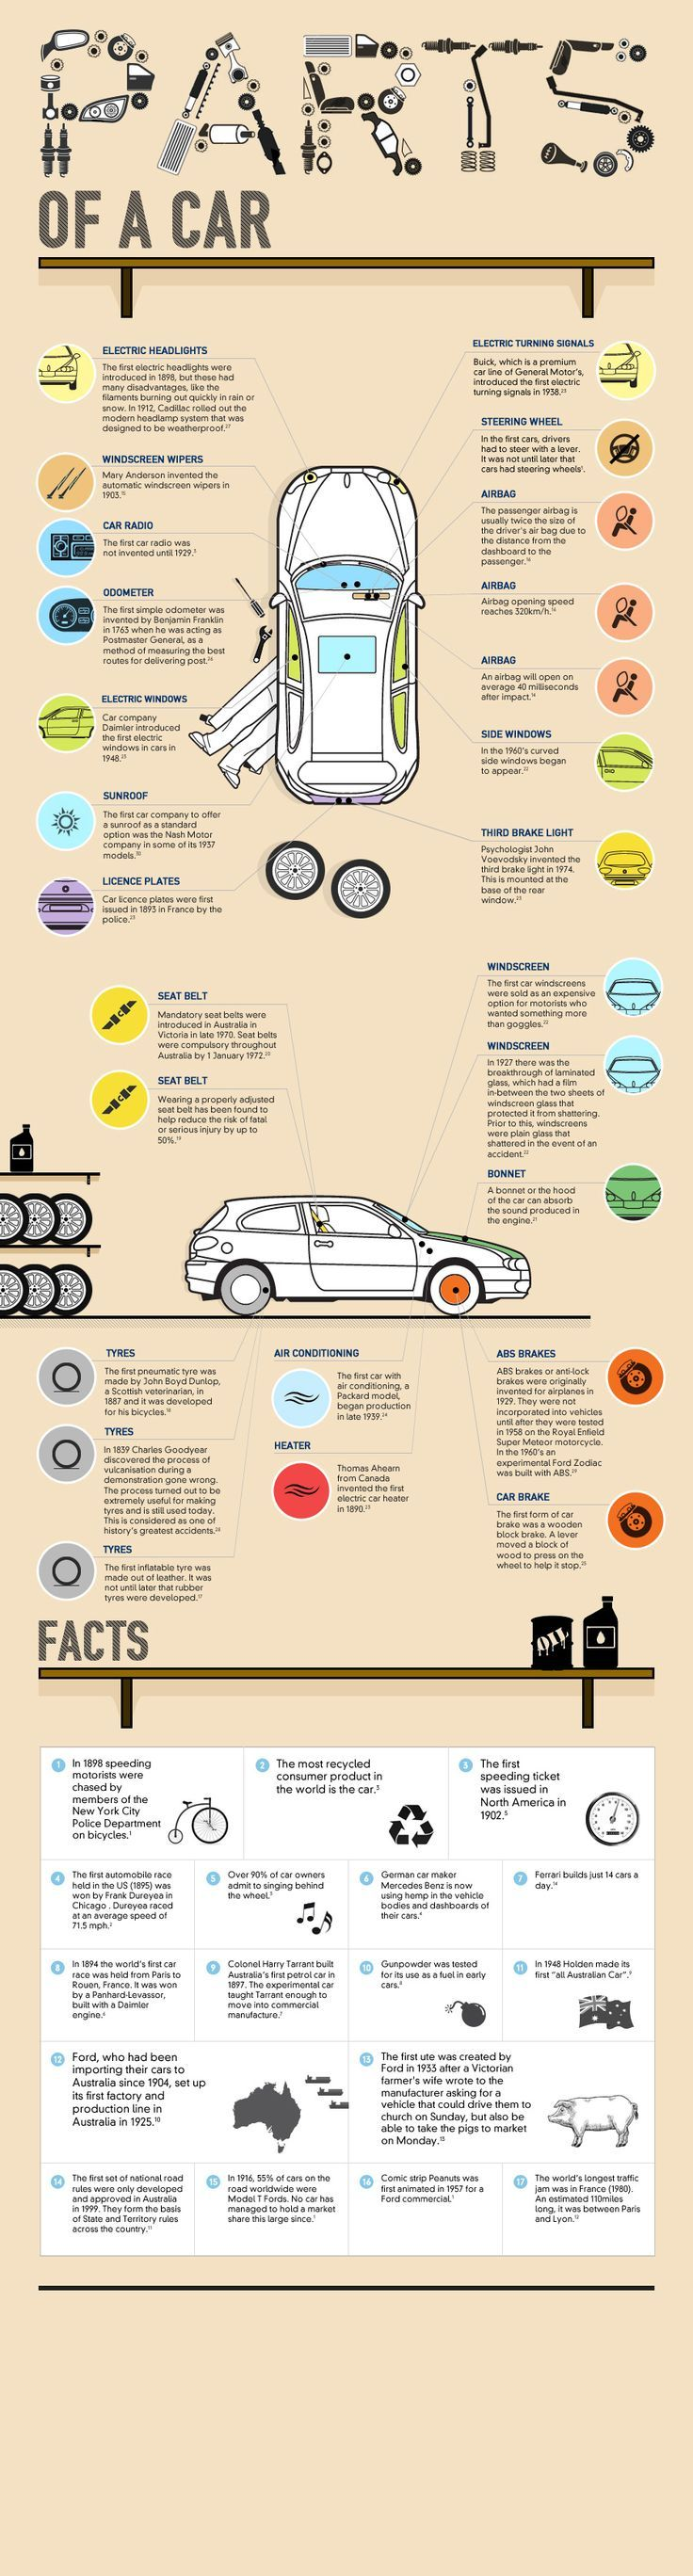 Do you know what makes your car run? Try quizzing yourself ...